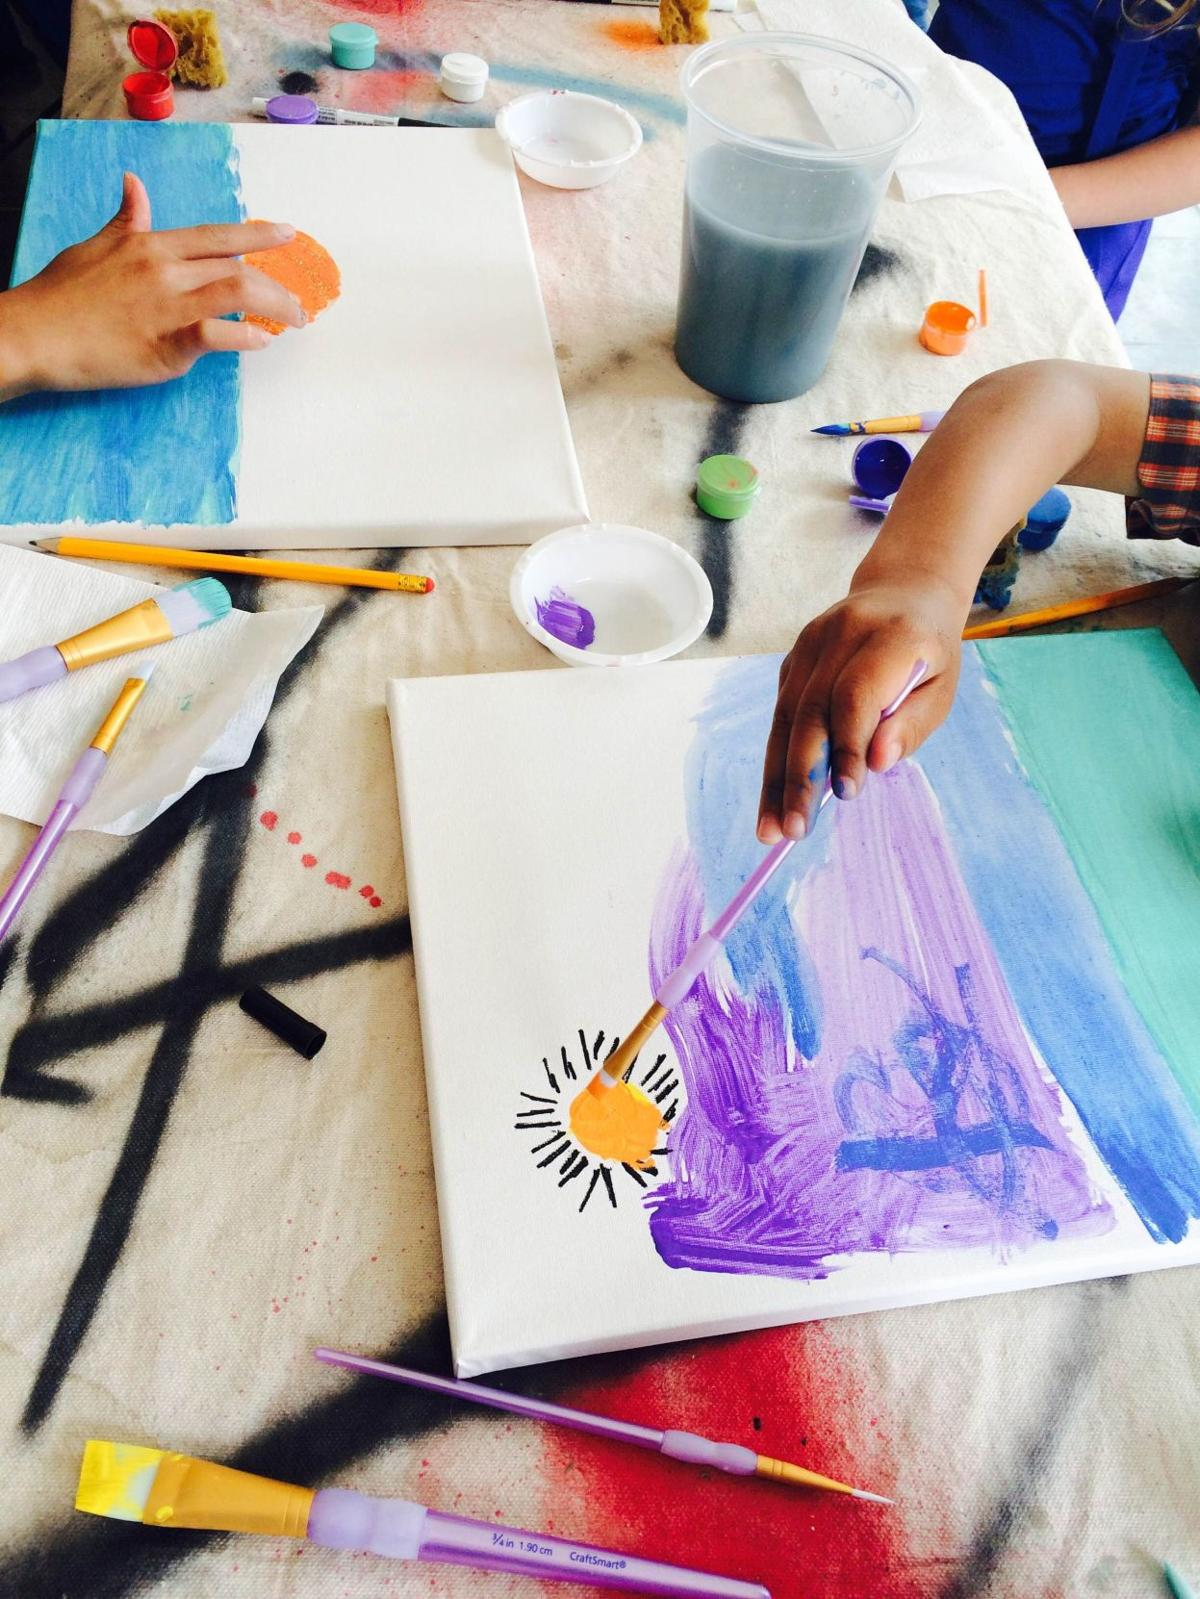 Re-Generation Indy pairs artist mentors with kids